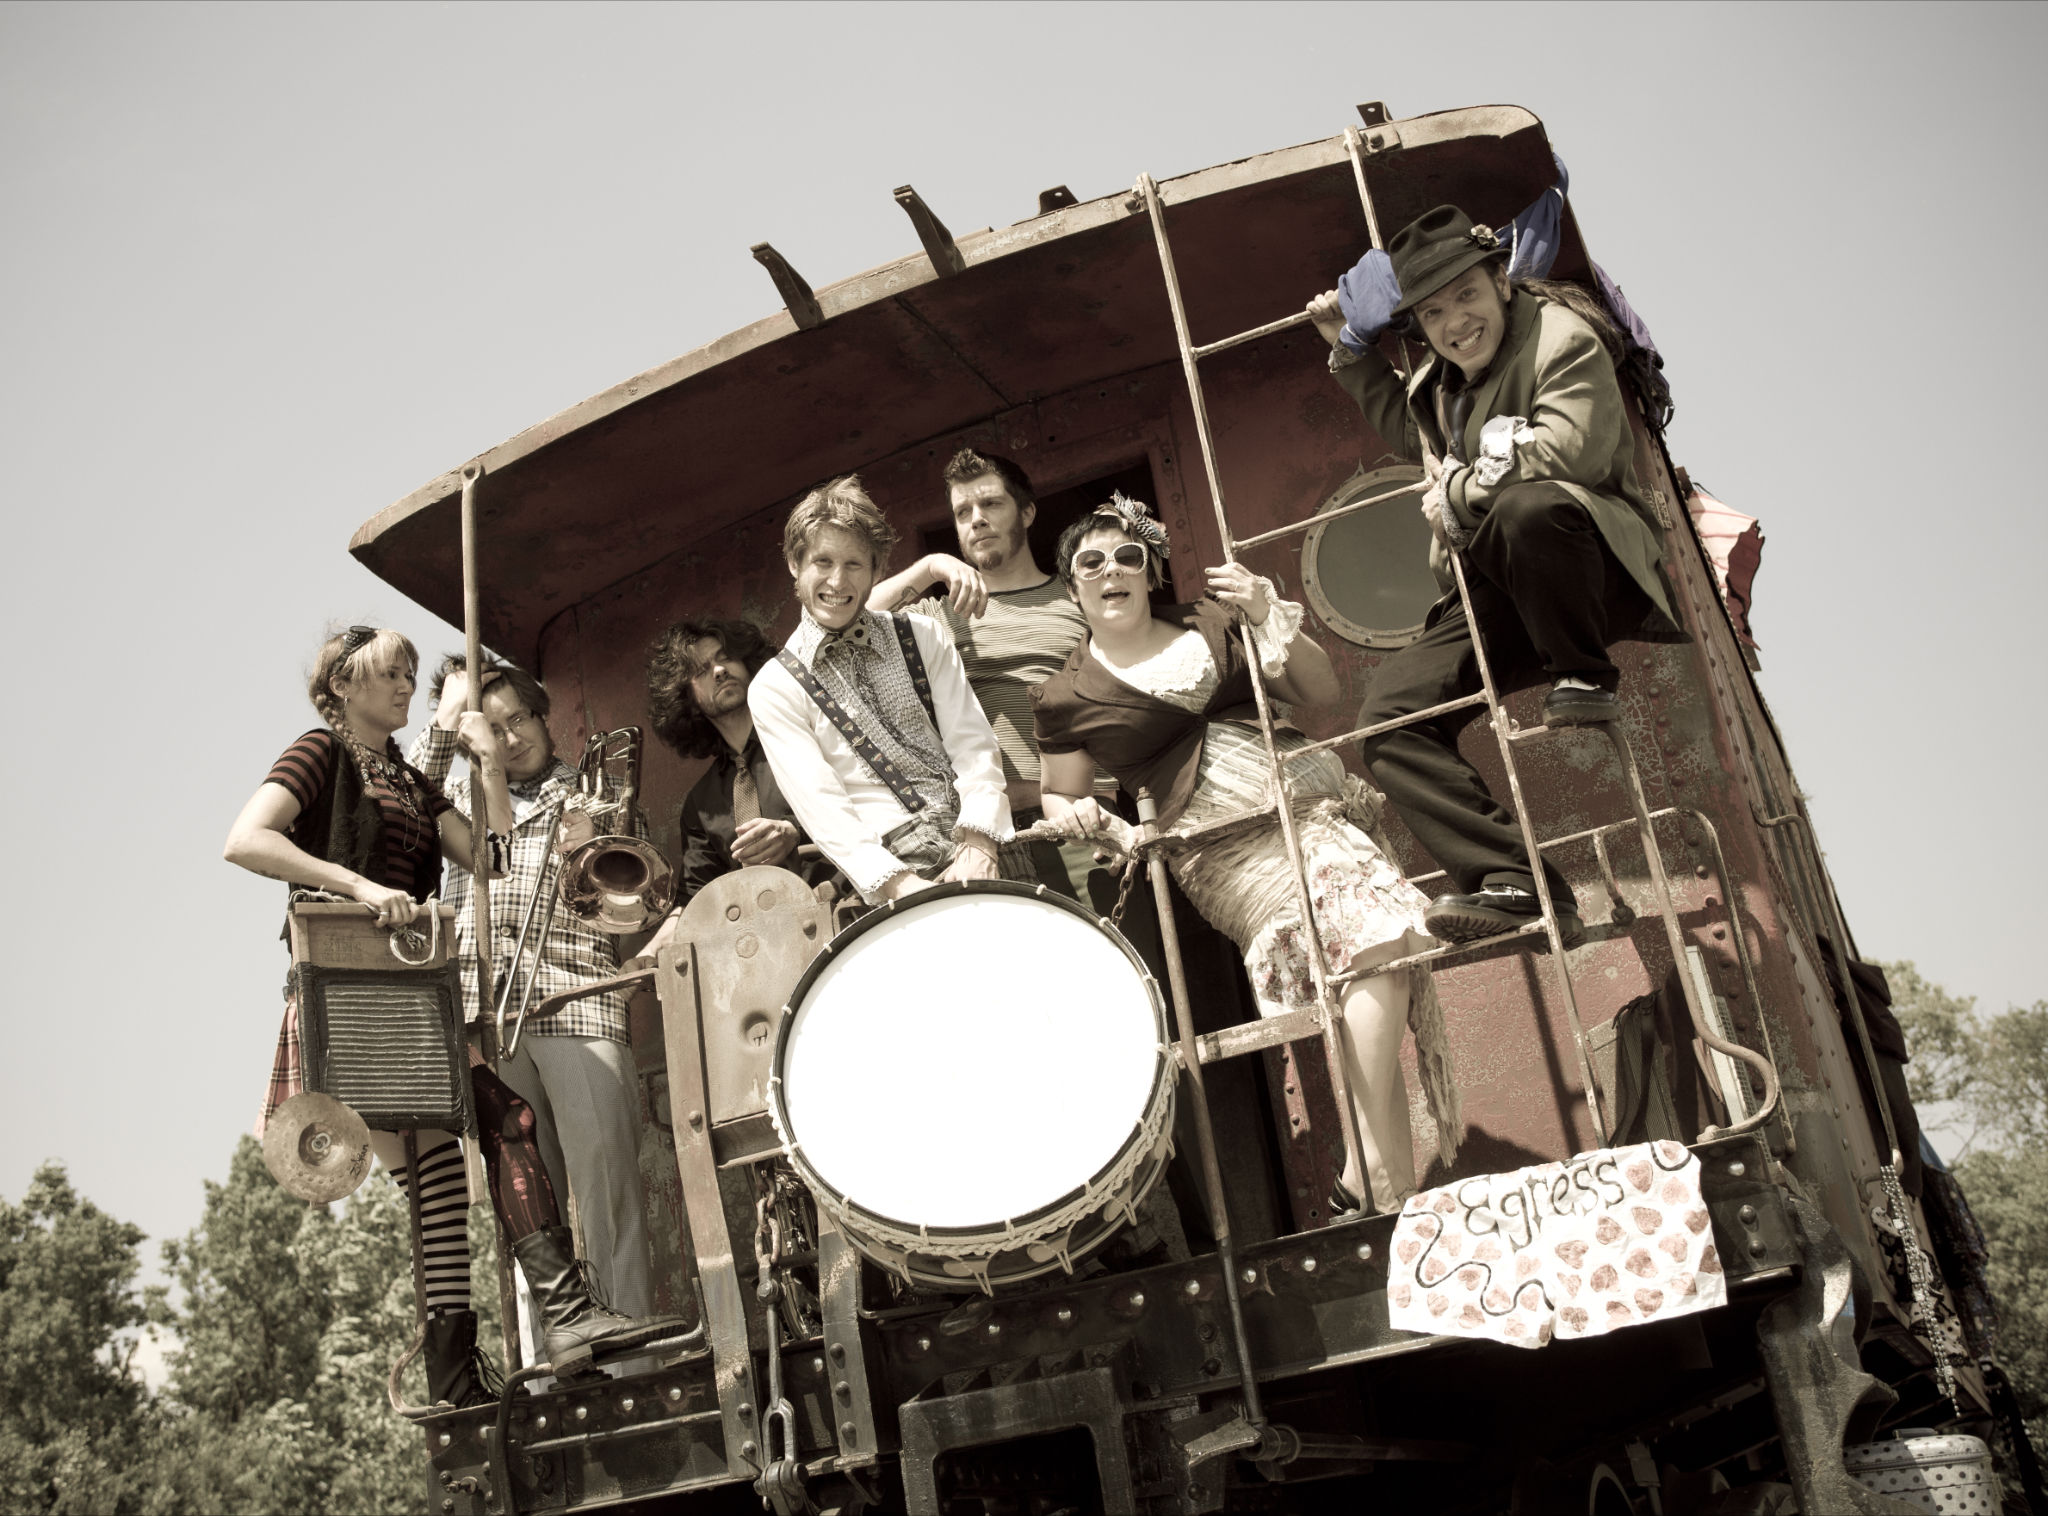 Steampunk band This way to the Egress